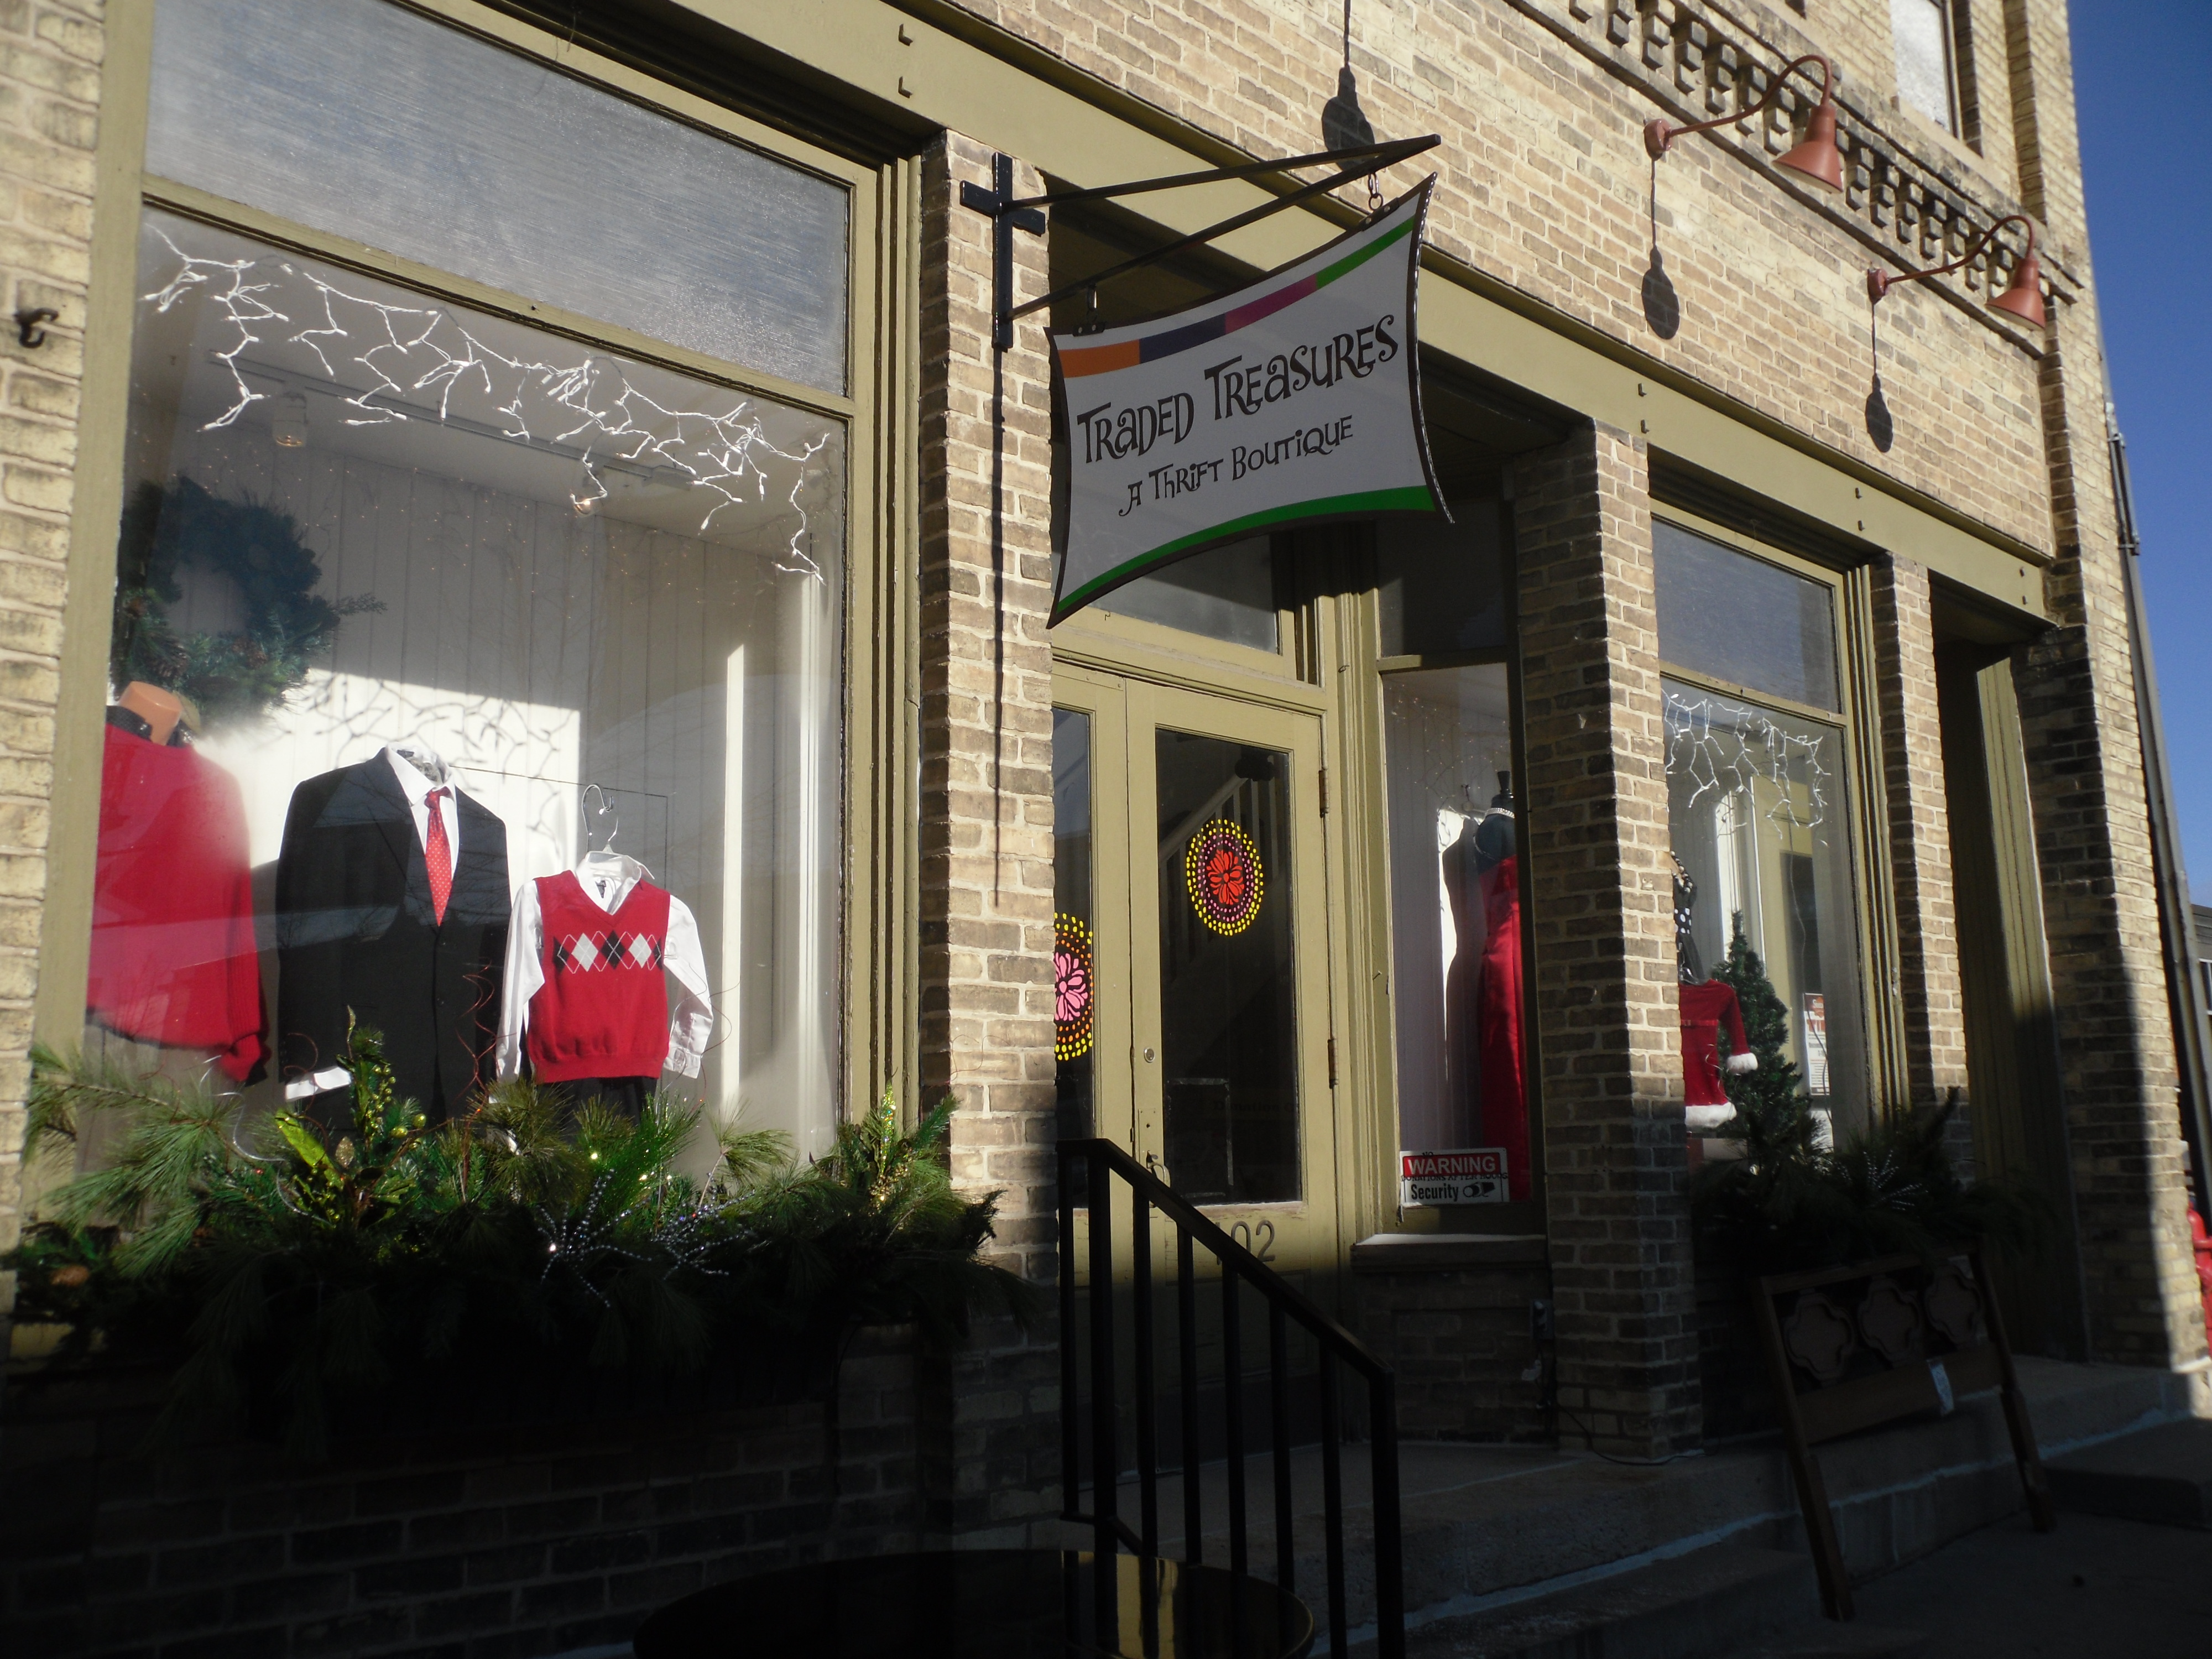 Traded treasures a thrift boutique a thrift boutique for Food pantry ripon wi